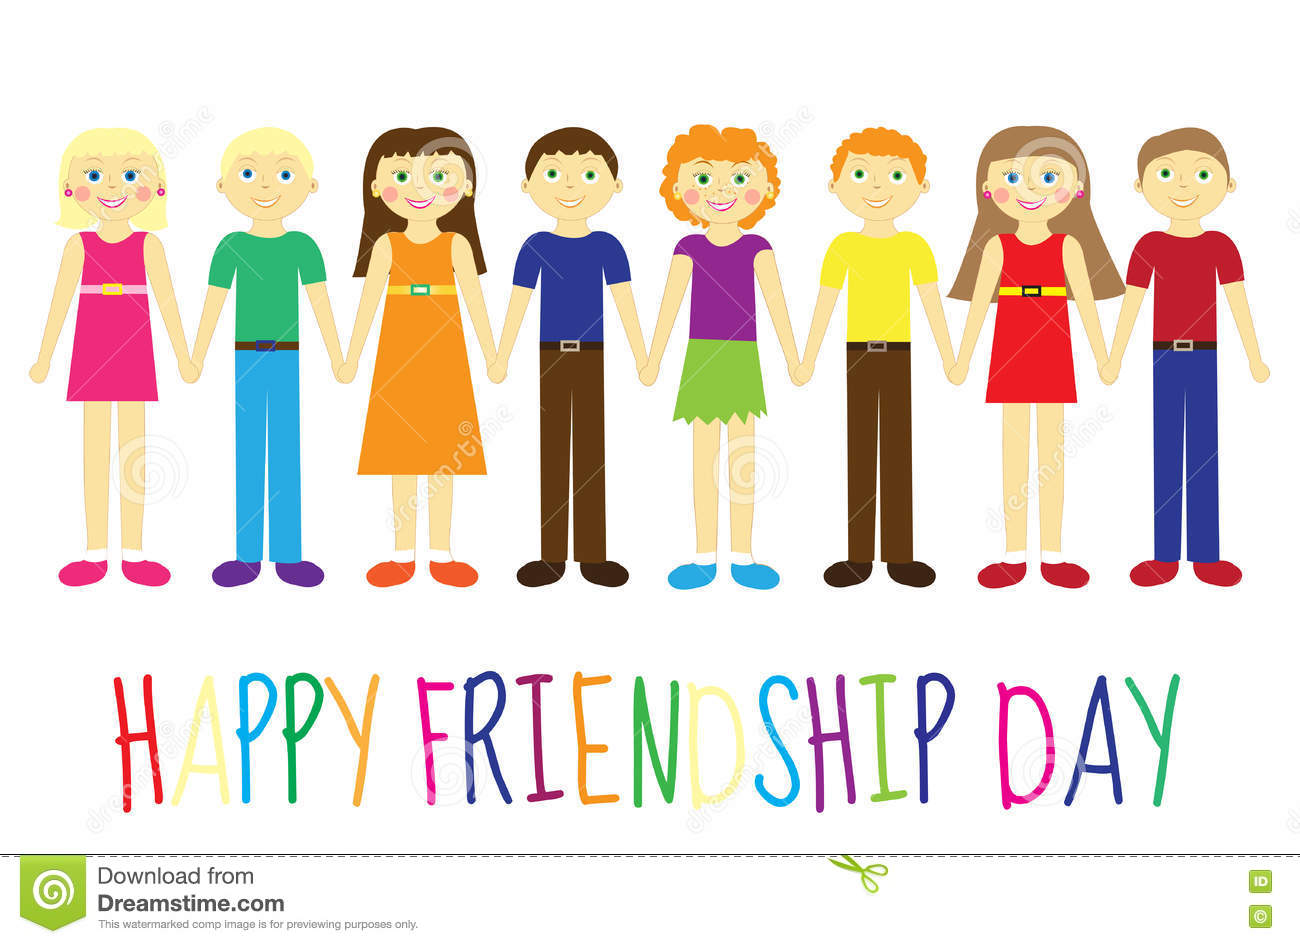 Greeting Card With A Happy Friendship Day Greeting Card Cute Kids